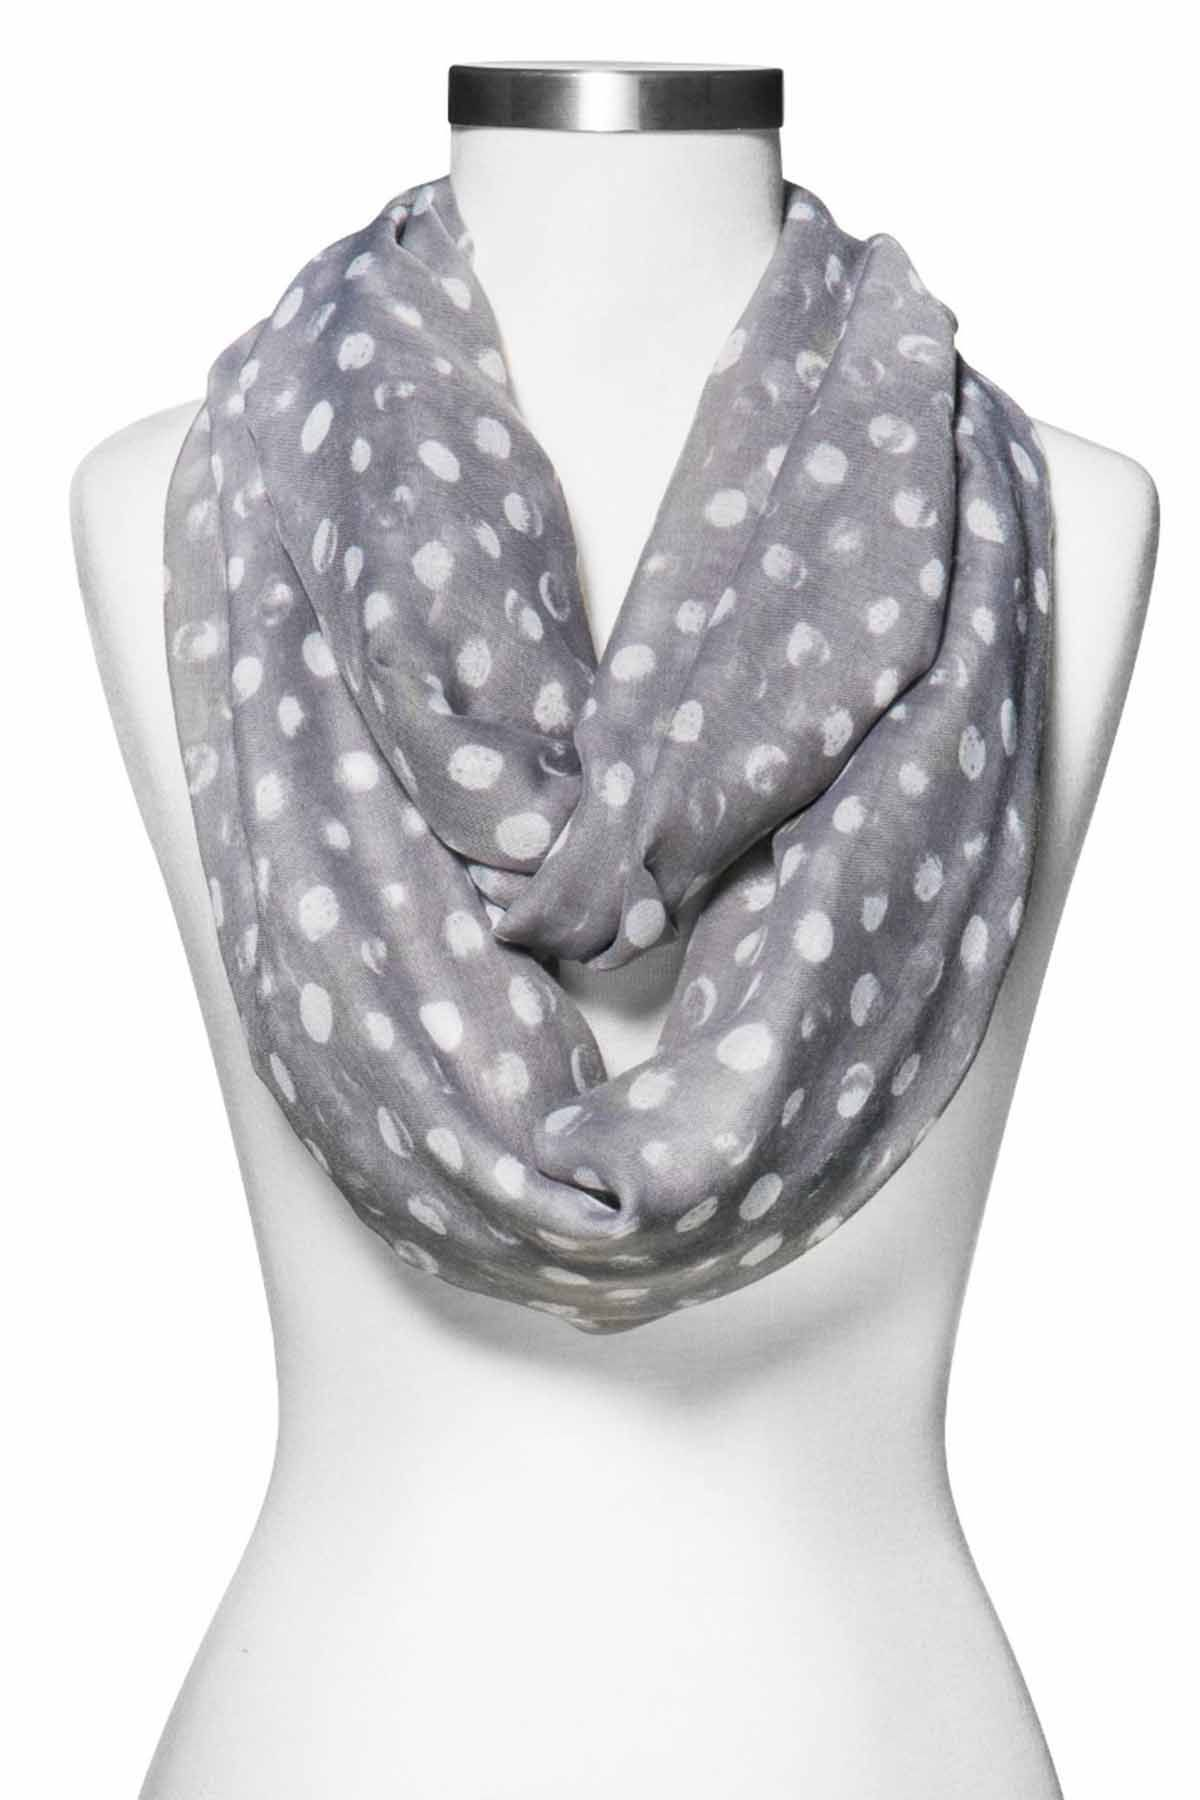 Forum on this topic: 10 Gorgeous Scarves for Spring, 10-gorgeous-scarves-for-spring/